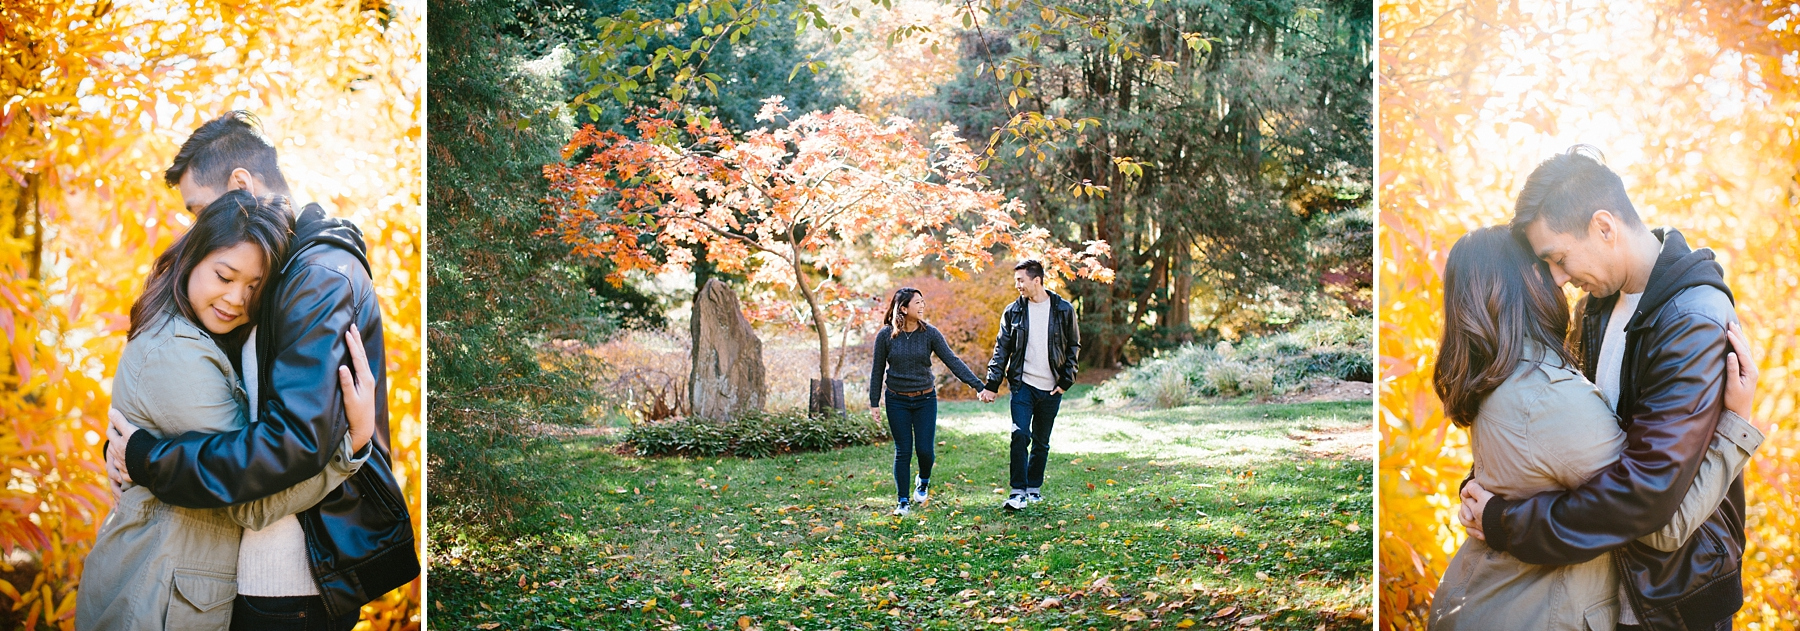 nj-arboretum-engagement-session-virgina_0003.jpg